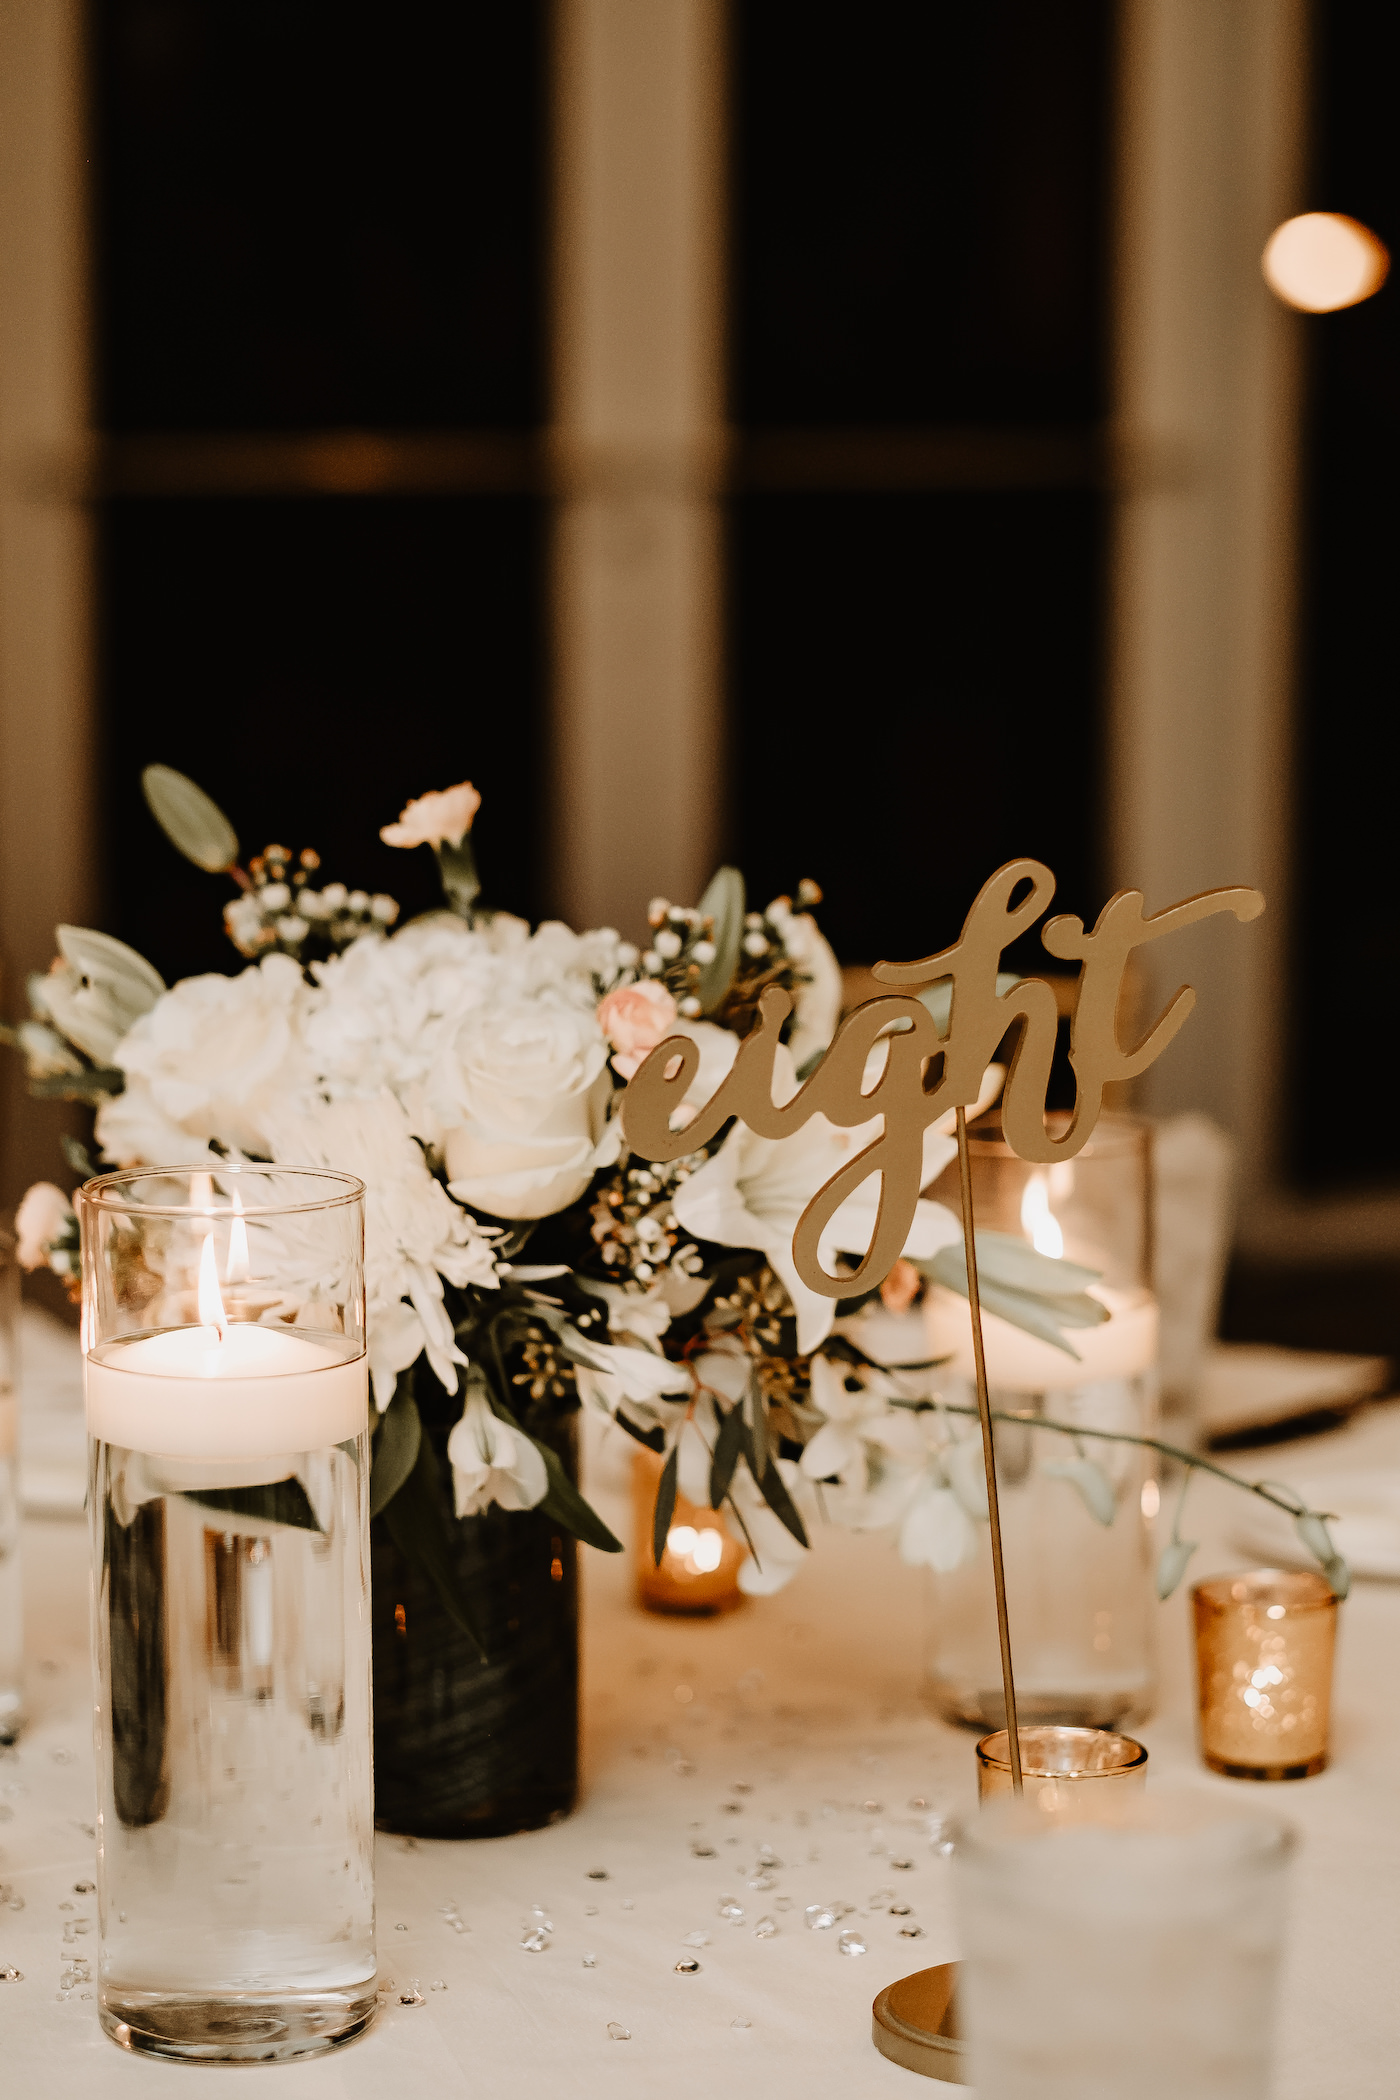 Gold Script Table Number   Gold Votive Candles and White Floral Centerpiece of Ivory Roses Chrysanthemums Lillies and Orchids and Floating Candles